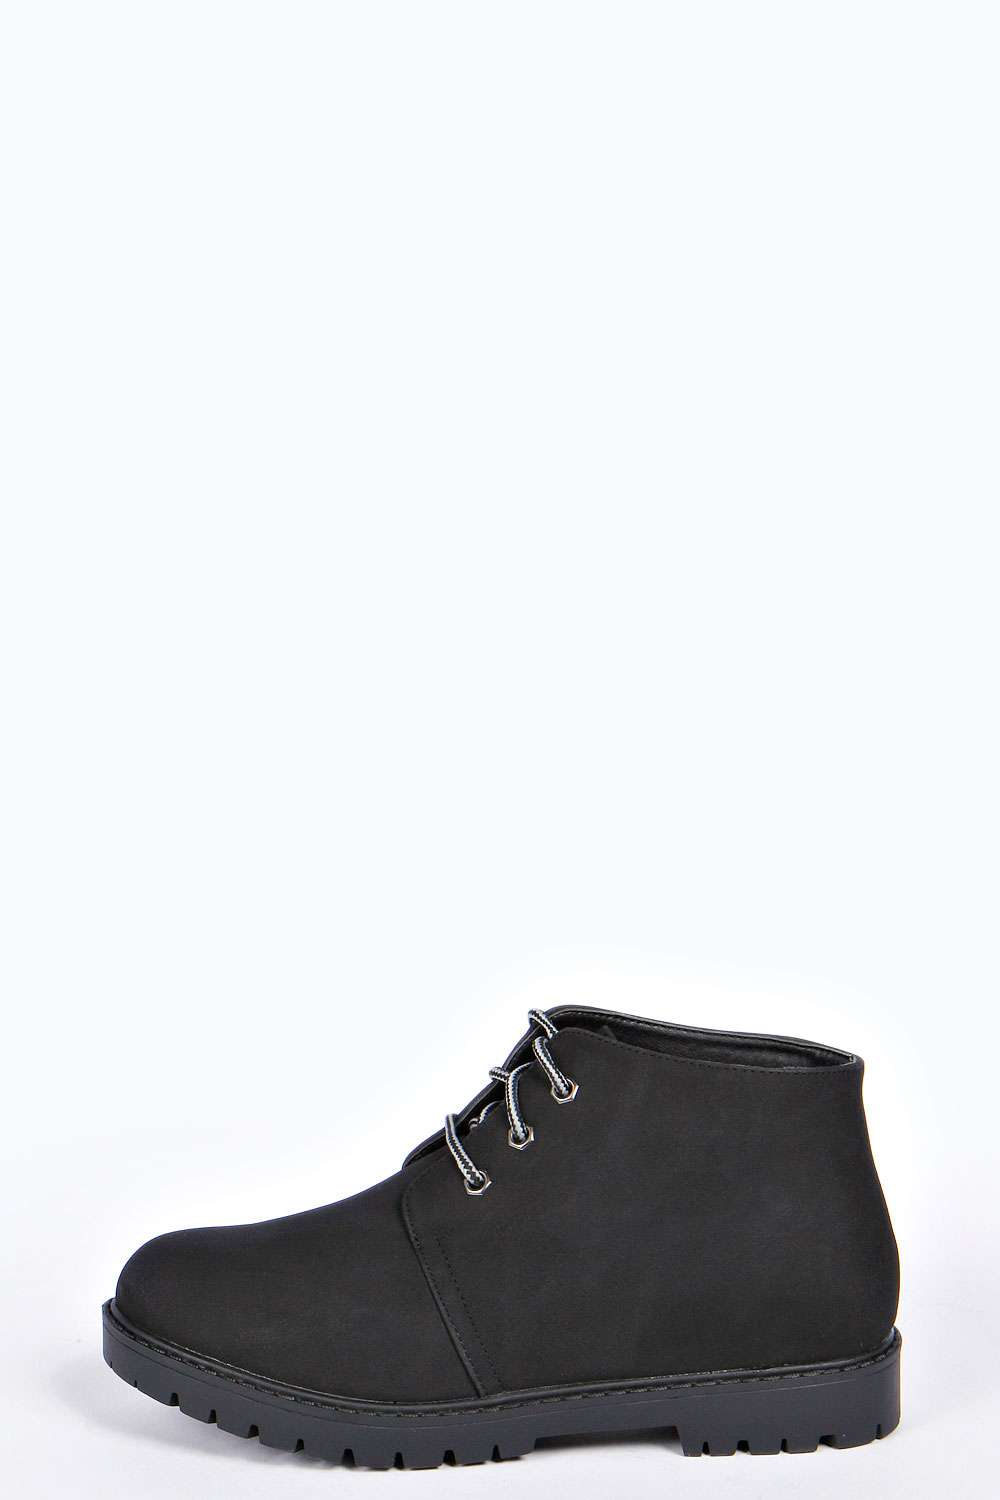 Mia lace up desert boots